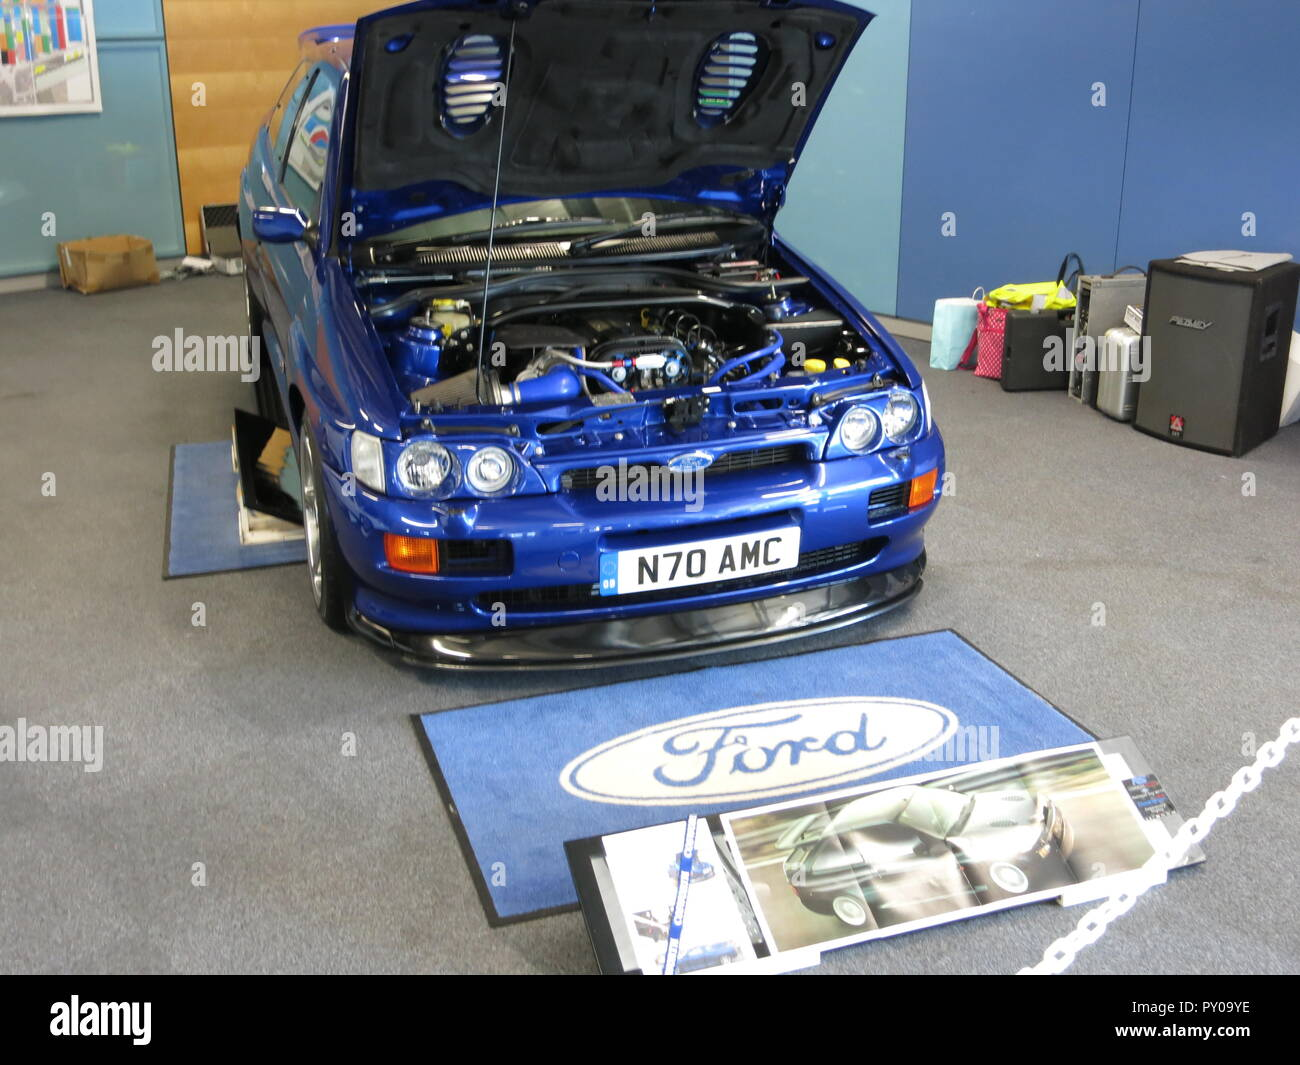 Ford Escort RS Cosworth 4x4 in imperial blue paintwork shown at donnington park race circuit at the RS owners club national day 2017 modified example concours condition with bonnet raised showing engine bay - Stock Image